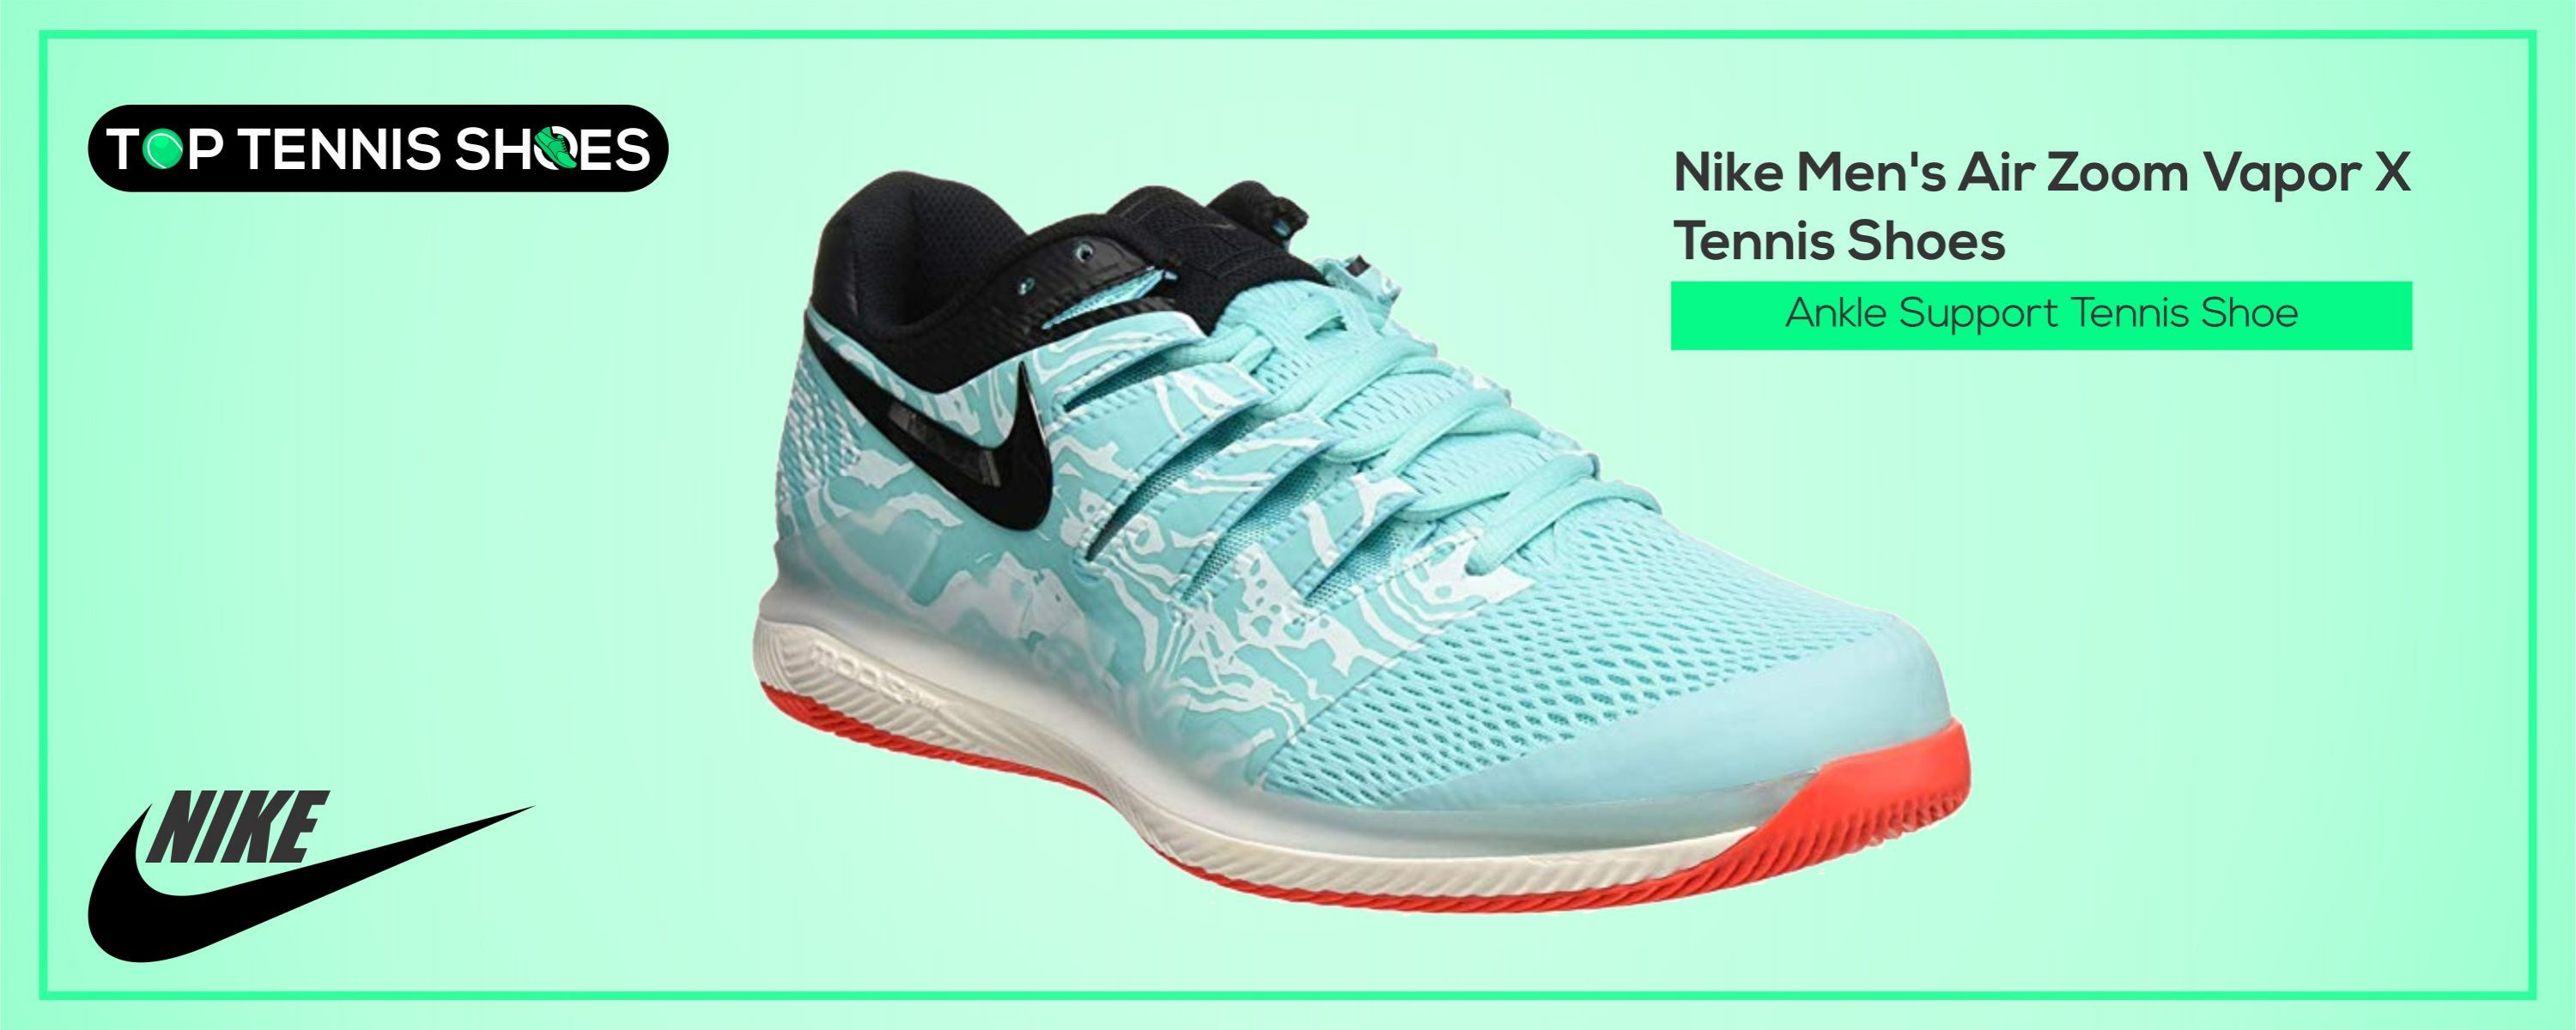 Nike Tennis Shoe for ankle support